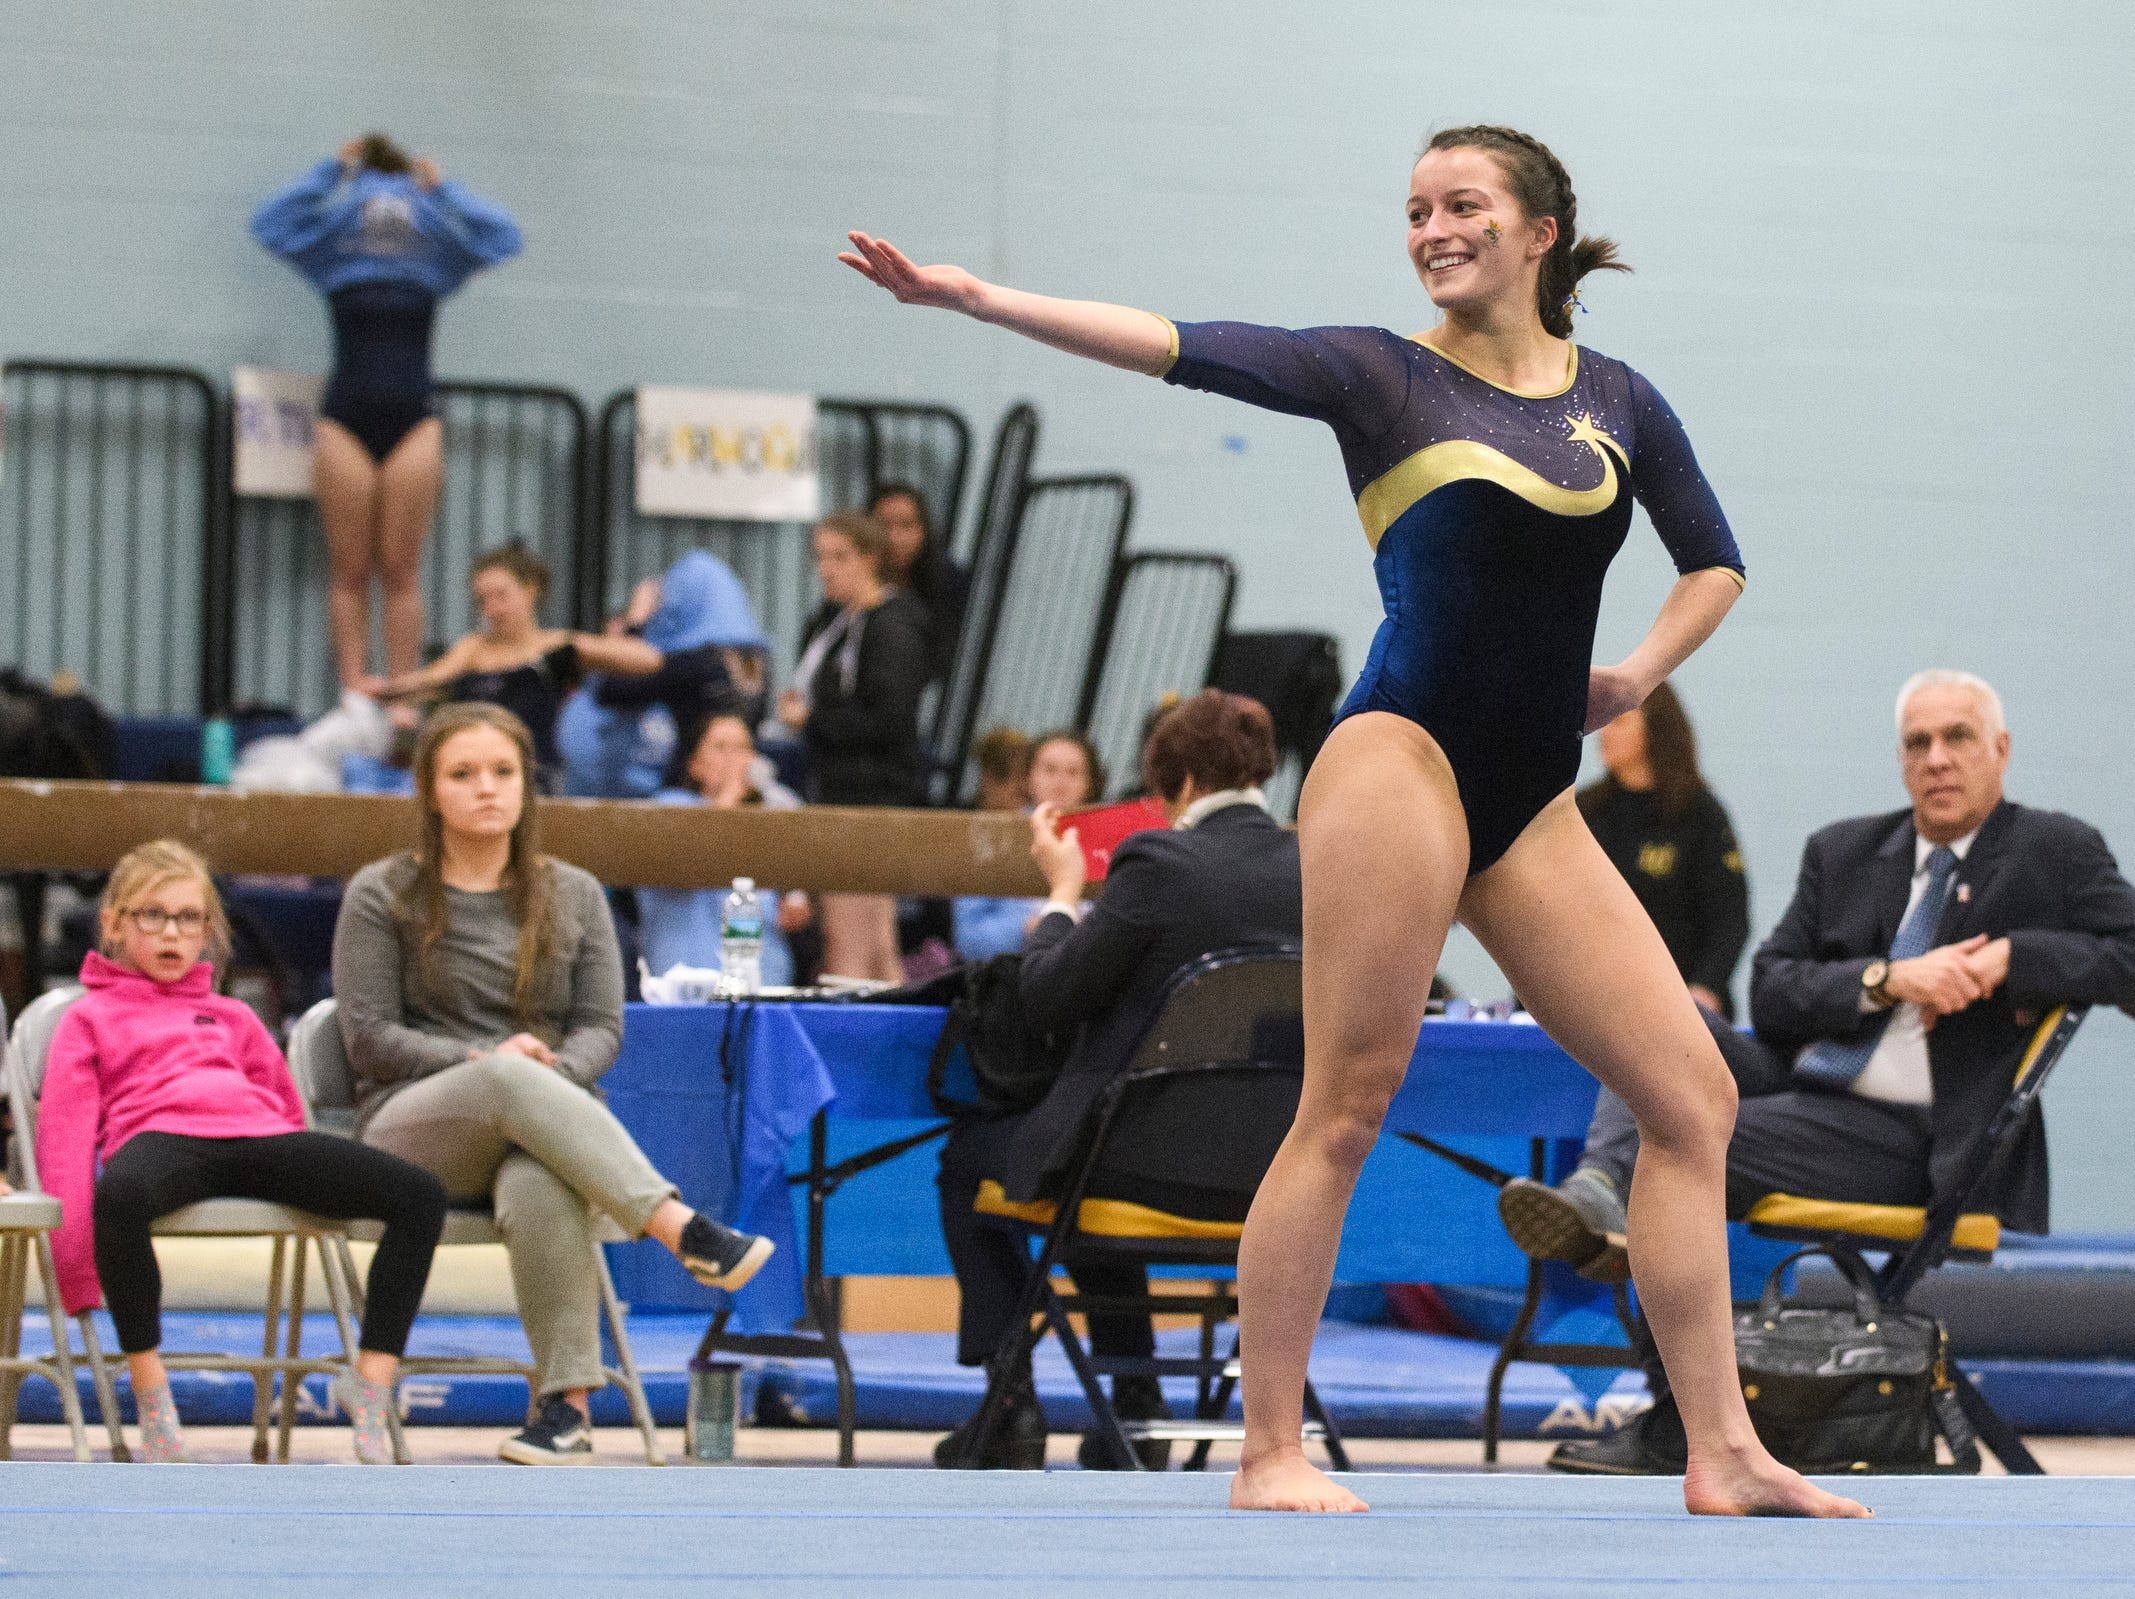 Essex's Abigael Gleason comets in the floor routine during the 2019 high school gymnastics championship at Essex High School on Saturday afternoon February 16, 2019 in Essex, Vermont.